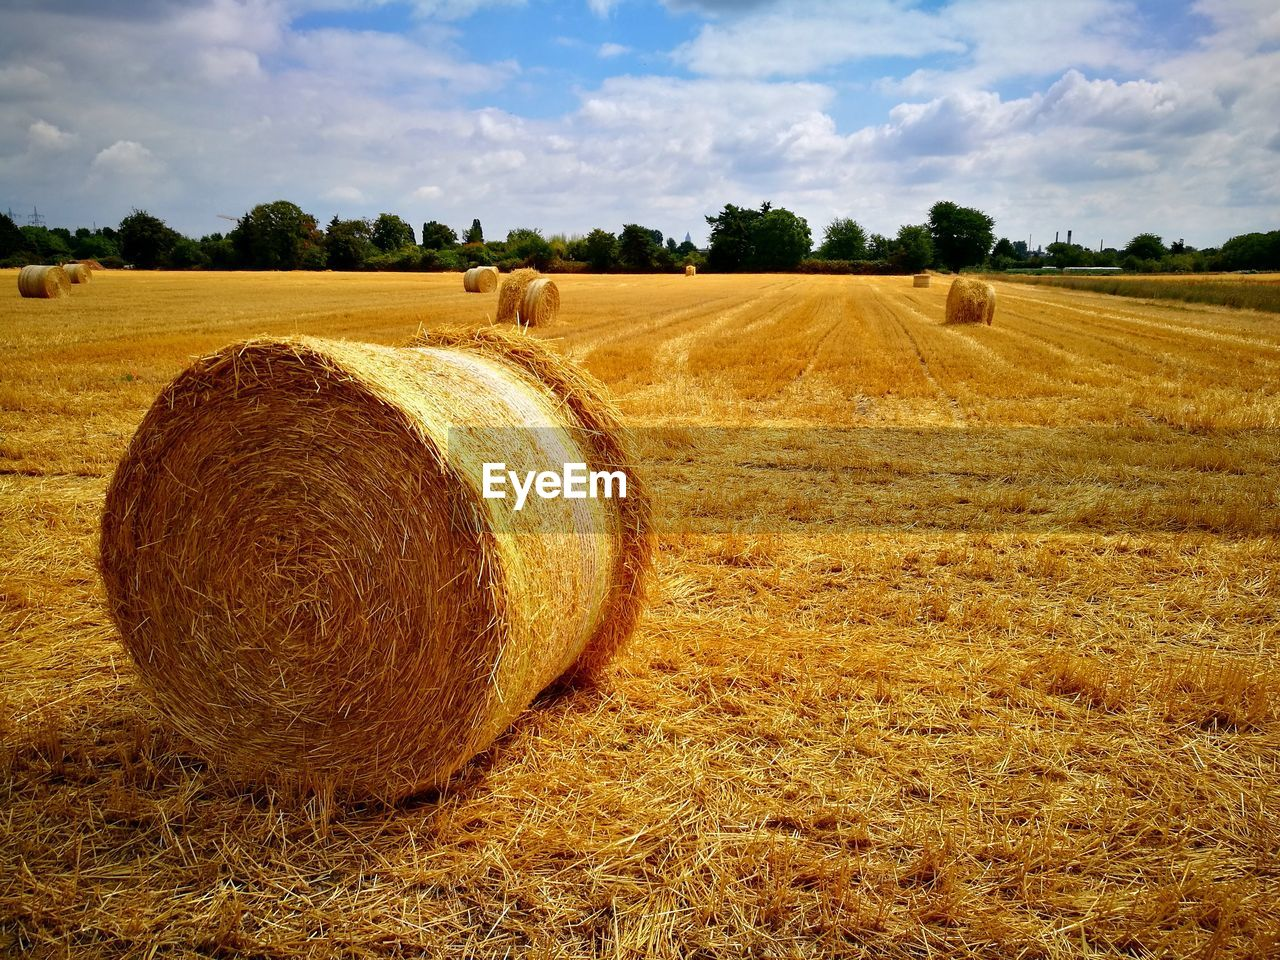 hay, field, agriculture, bale, land, landscape, plant, farm, sky, environment, rural scene, cloud - sky, scenics - nature, tranquil scene, rolled up, harvesting, nature, tranquility, beauty in nature, tree, no people, outdoors